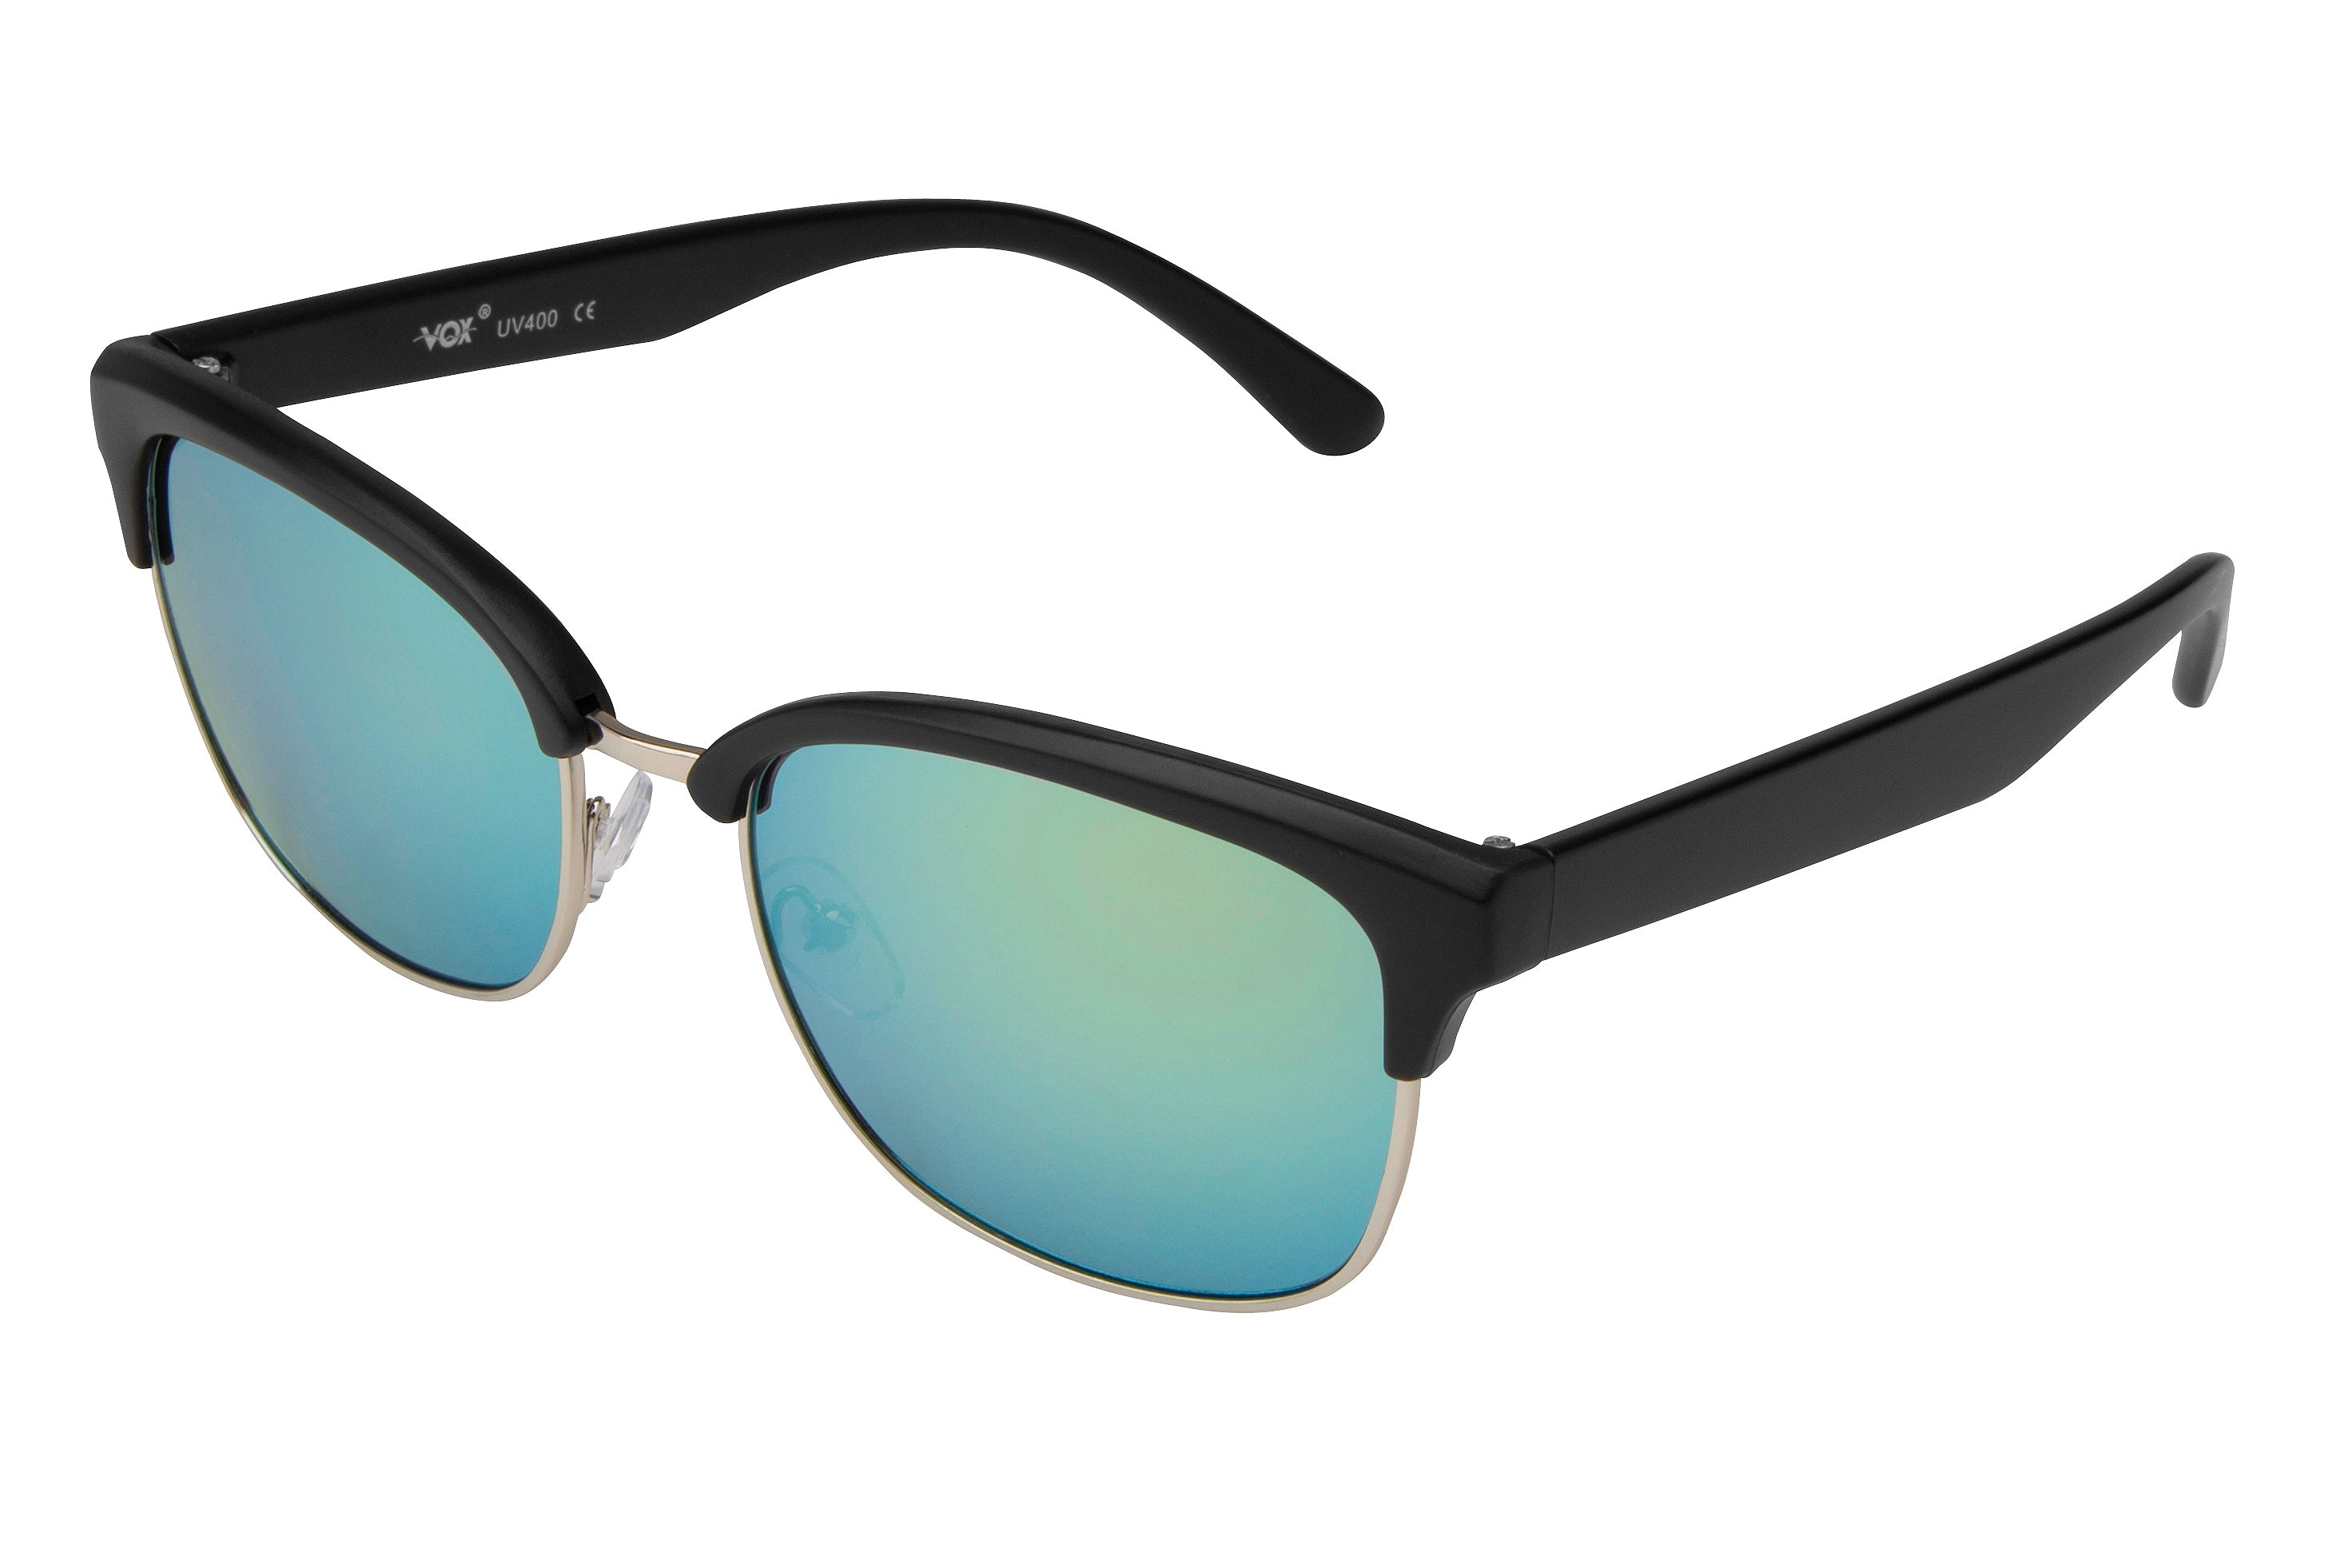 66160 - Vox Women's PC Fashion Sunglasses